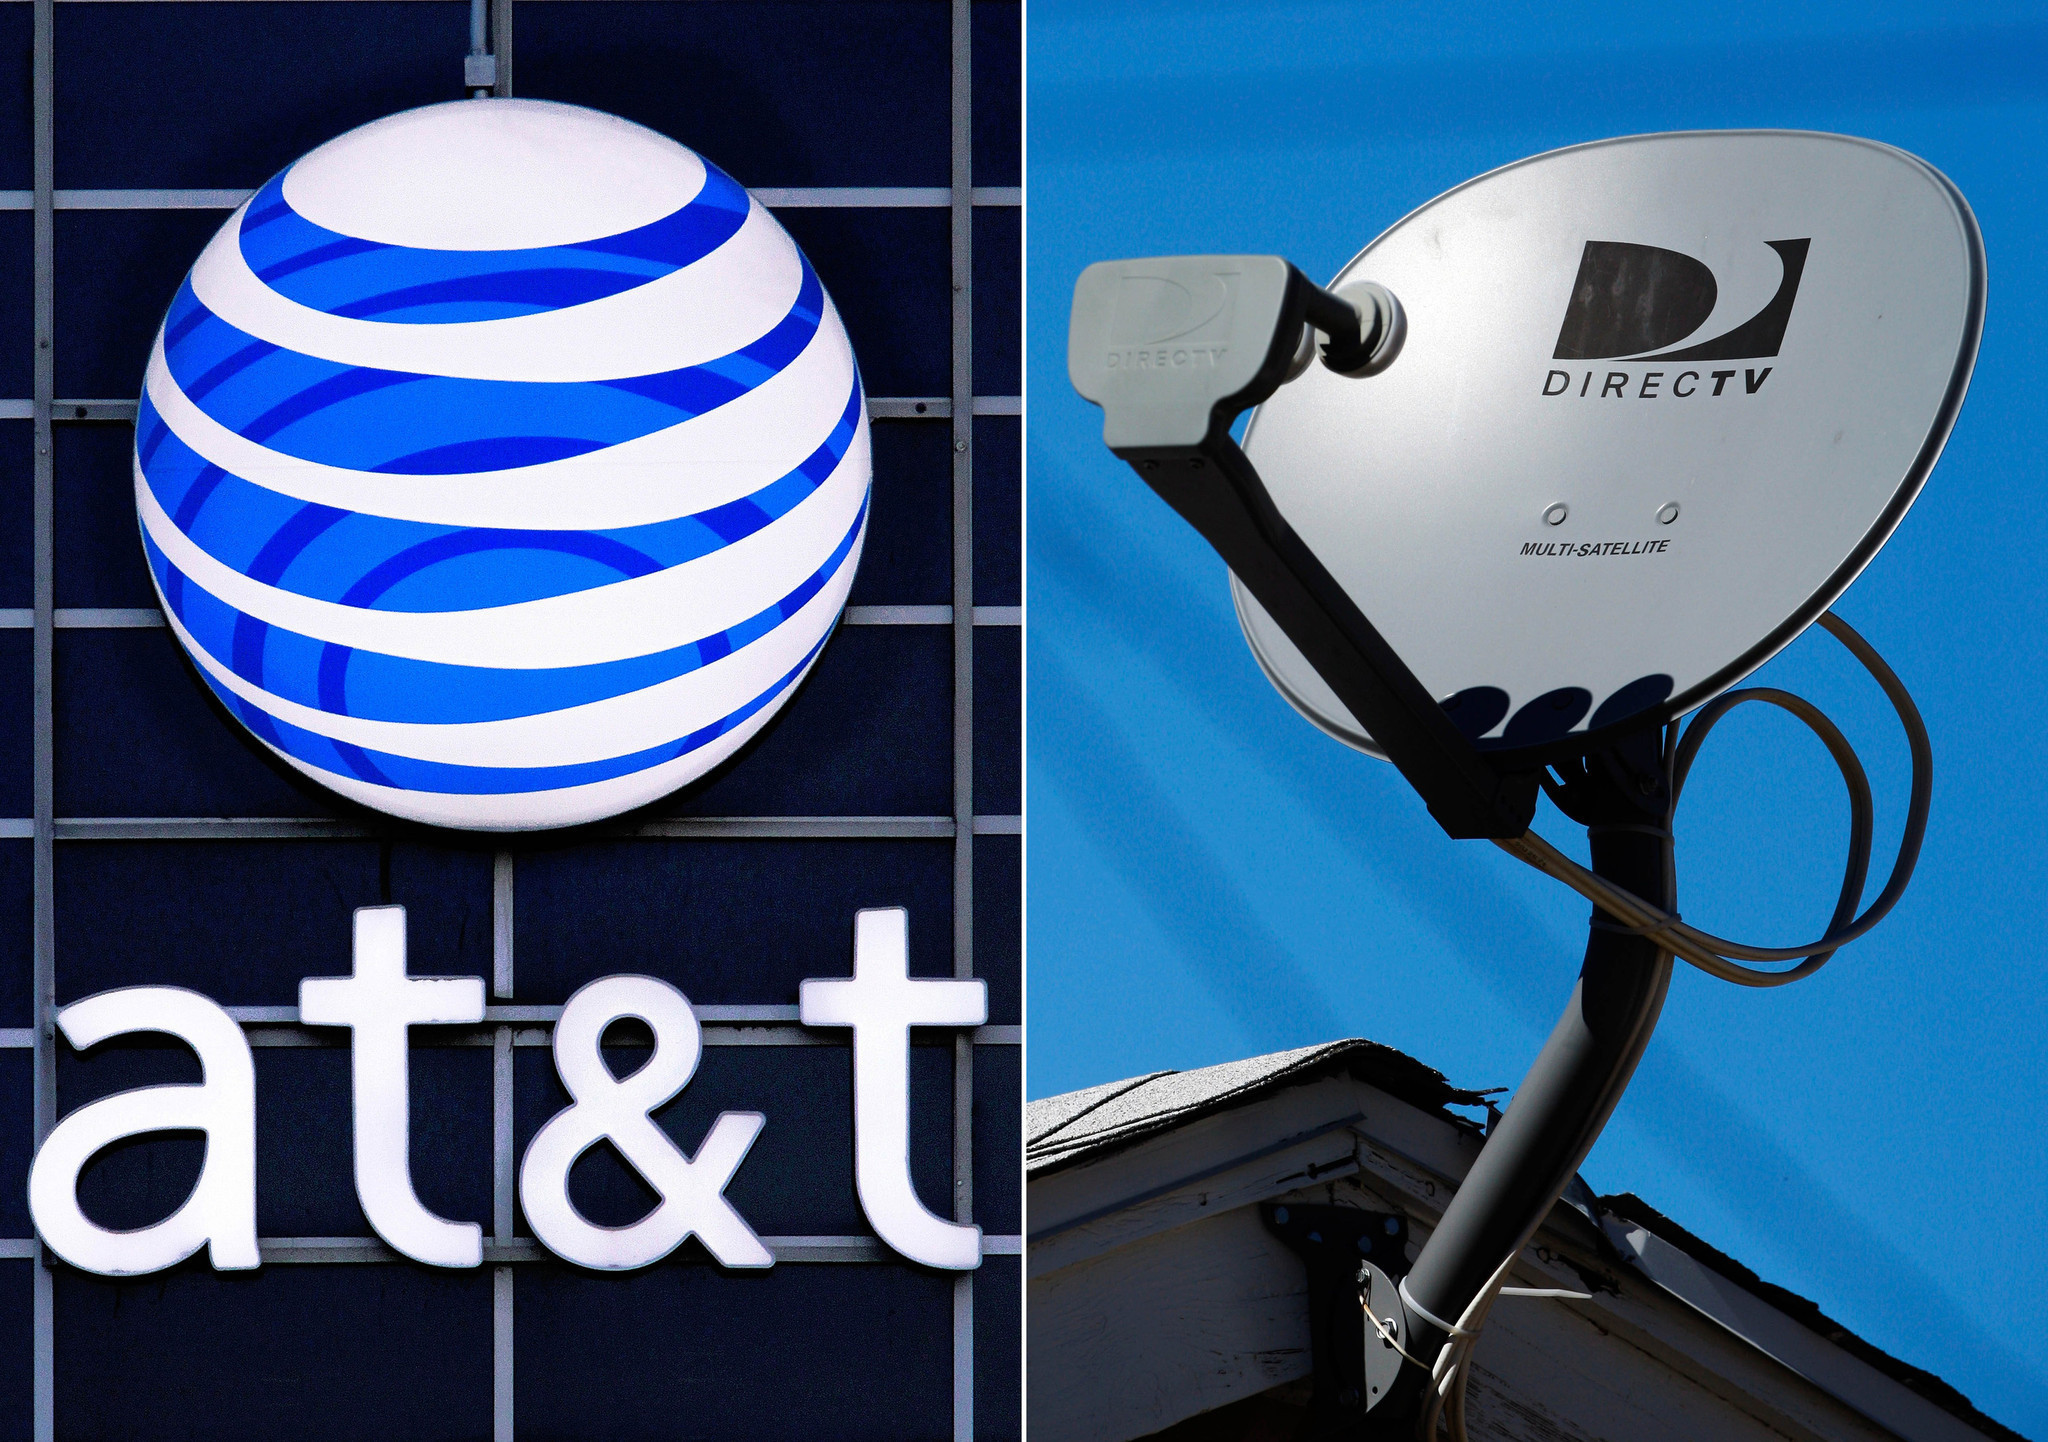 Today is the last day all new customers and existing AT&T customers will receive a $ bill credit** for each new smartphone, tablet, feature phone, mobile hotspot or Wireless Home Phone line of service they add to the nation's most reliable 4G LTE network.***.